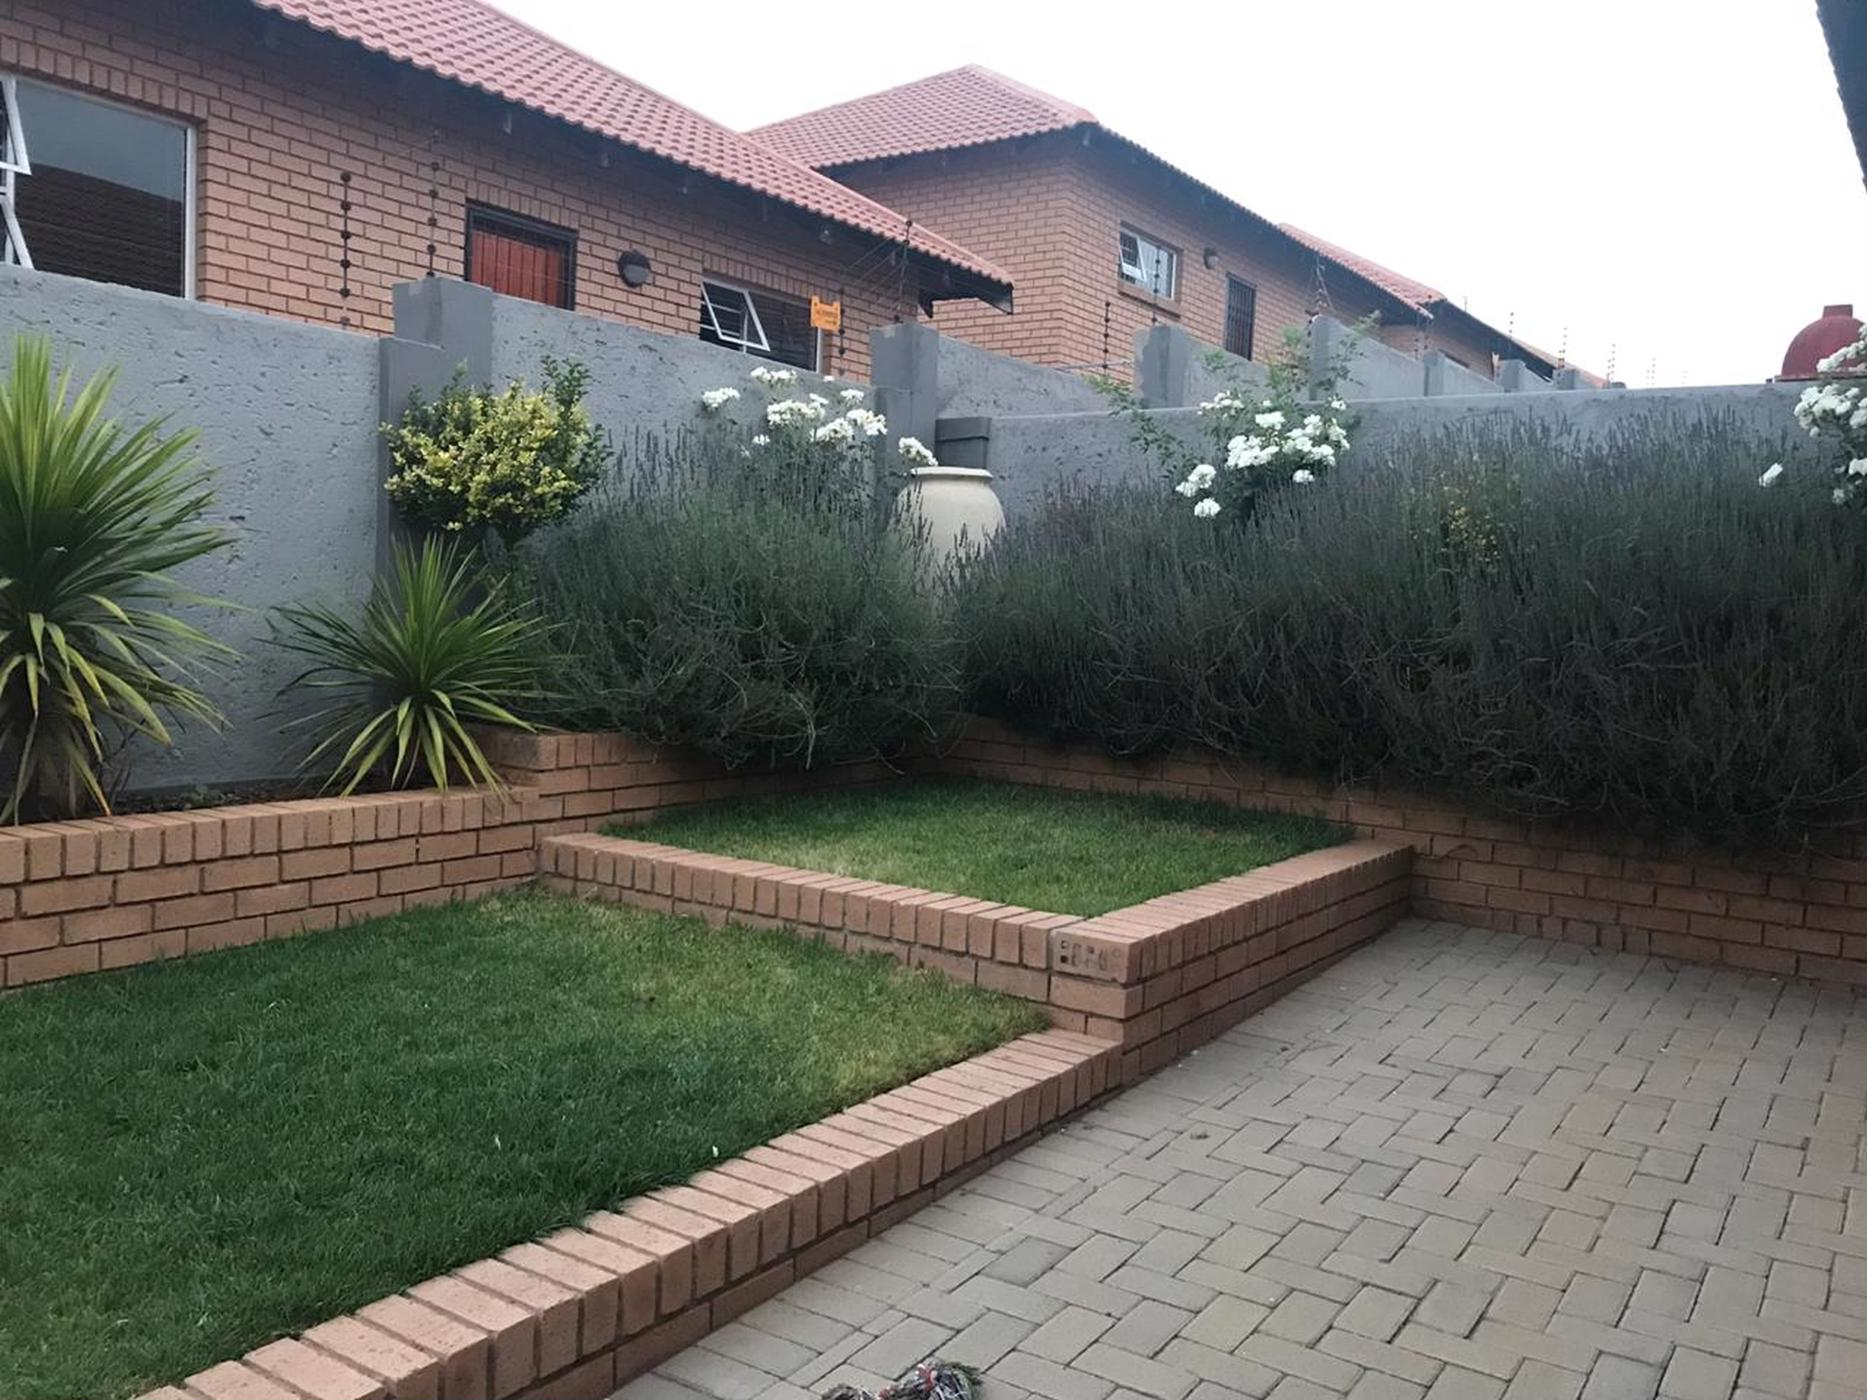 https://listing.pamgolding.co.za/images/properties/201811/1127131/H/1127131_H_5.jpg